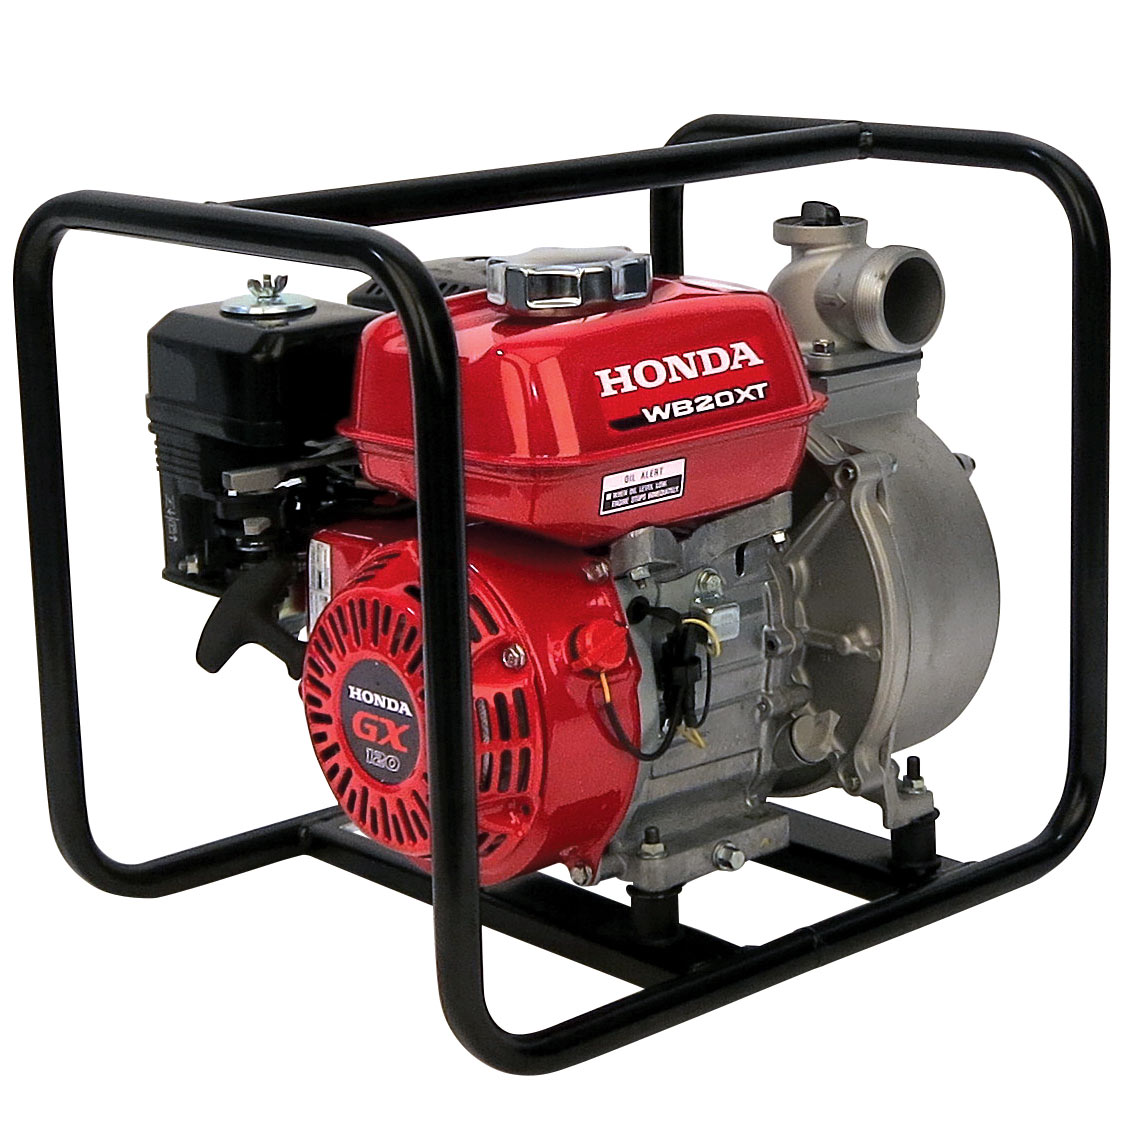 2016 Honda Power Equipment WB20 in Aurora, Illinois